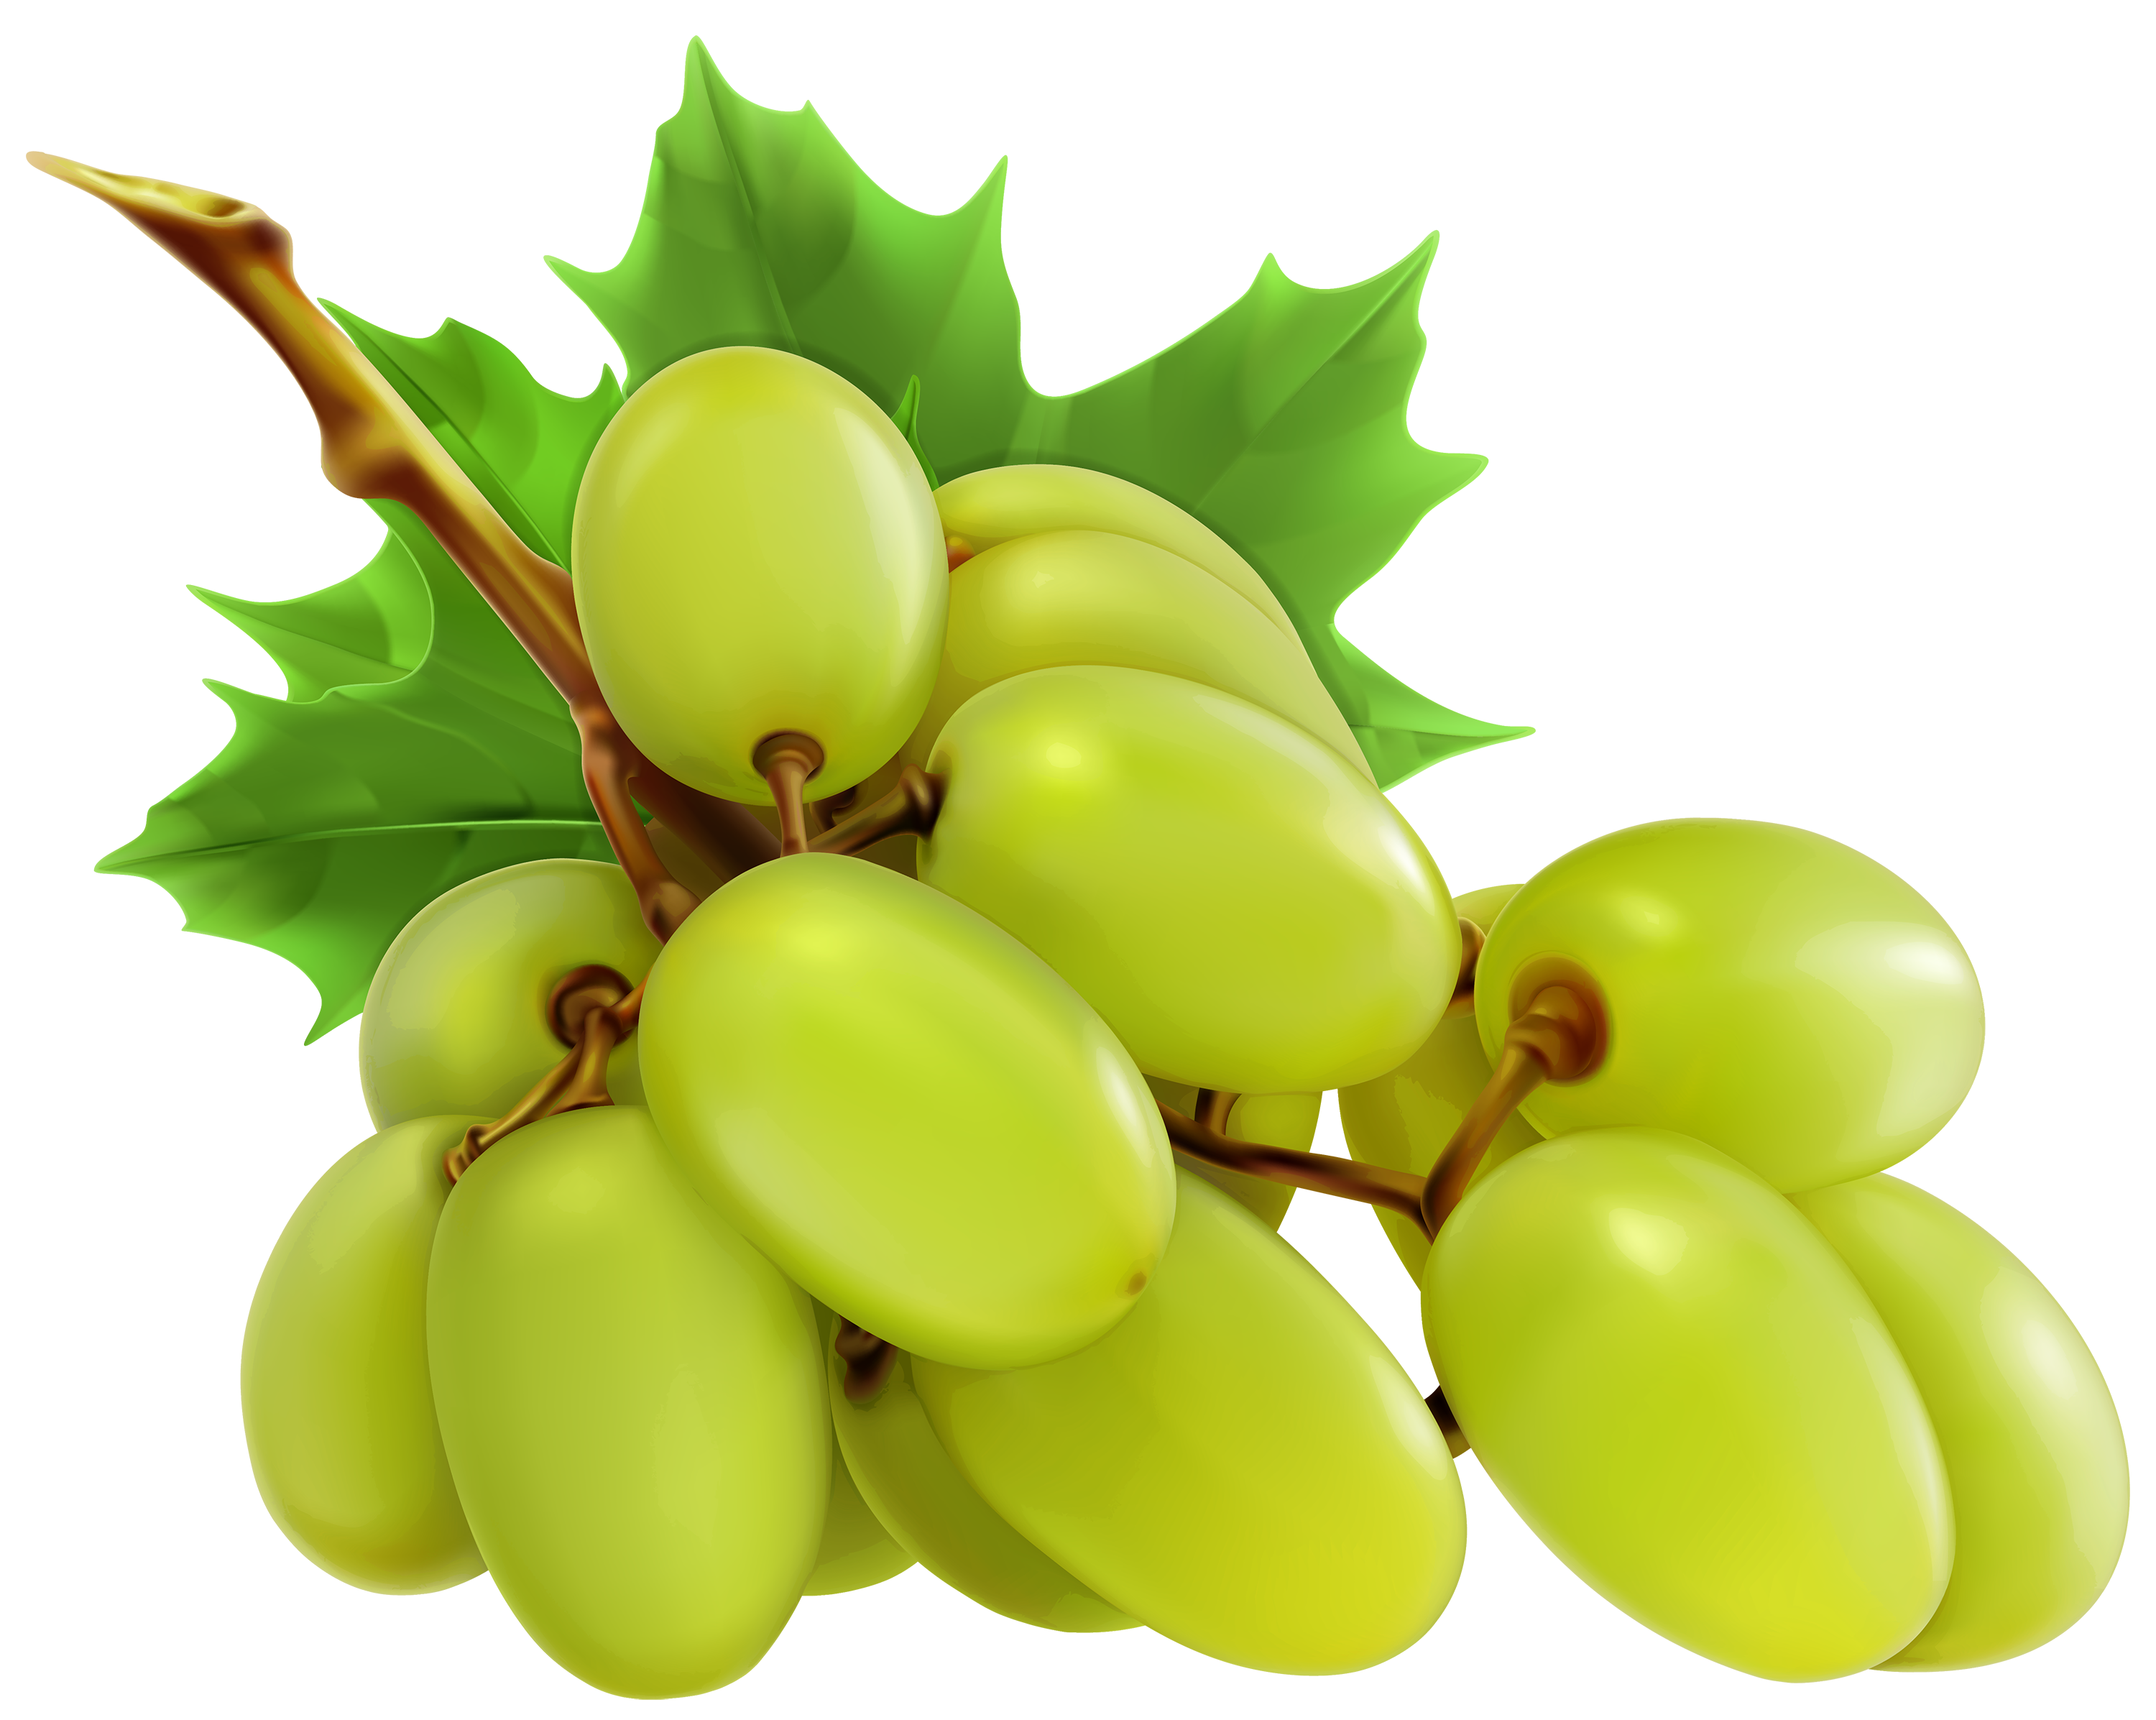 Wine Grapes Clipart | Free download best Wine Grapes Clipart on ...